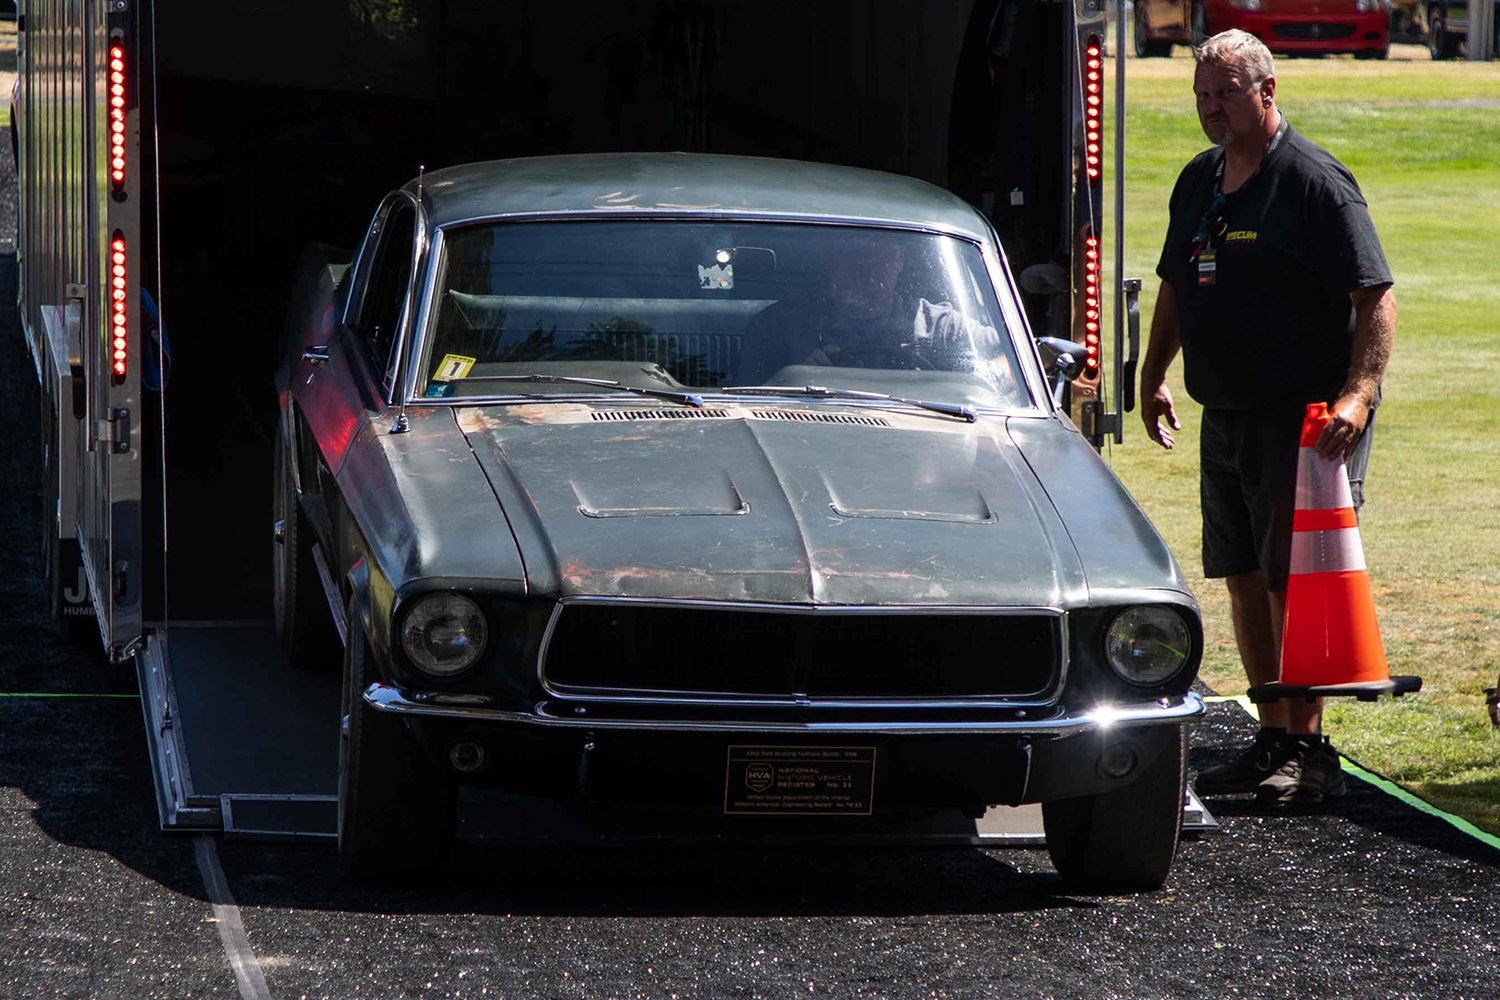 Steve Mcqueen S 1968 Mustang Gt From Bullitt Headed To Auction Insidehook